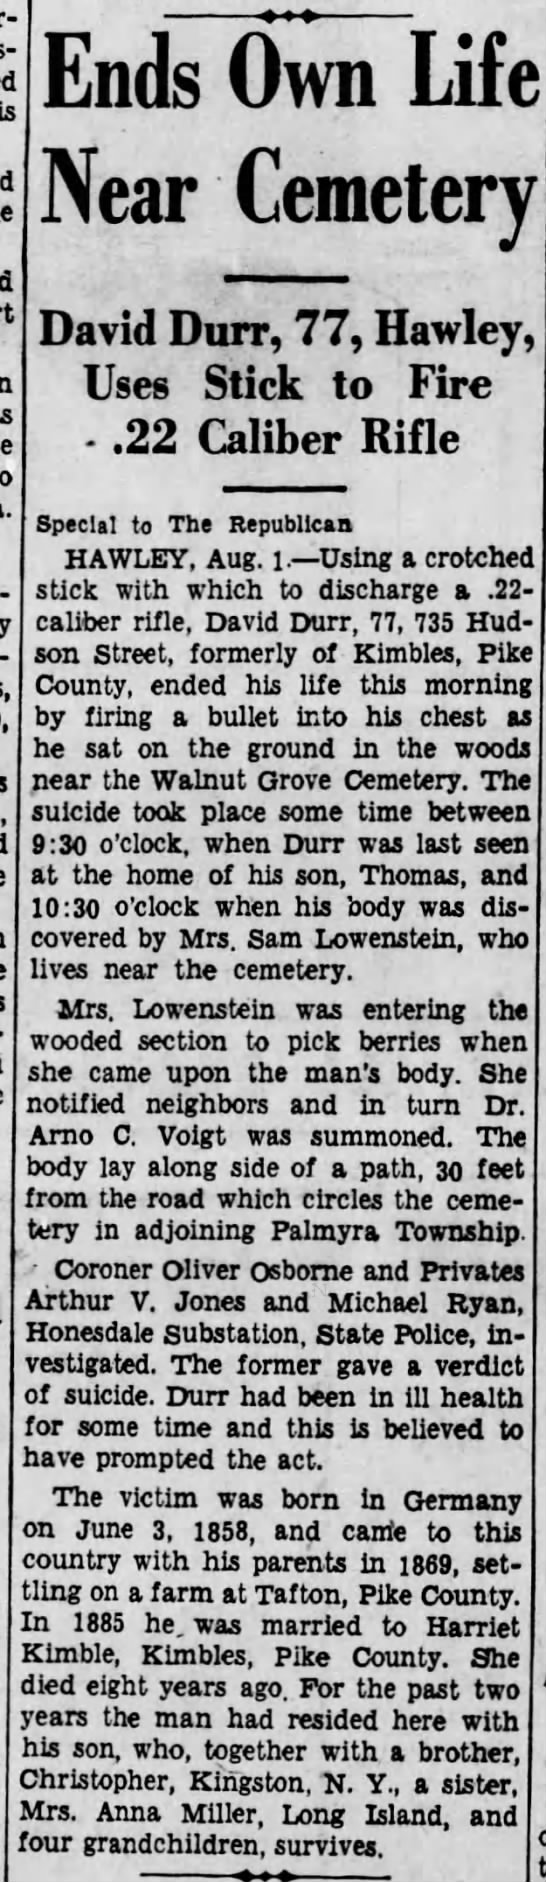 Mrs Samuel Lowenstein finds body - Ends Own Life Near Cemetery jj.j jj Hawley Uses...